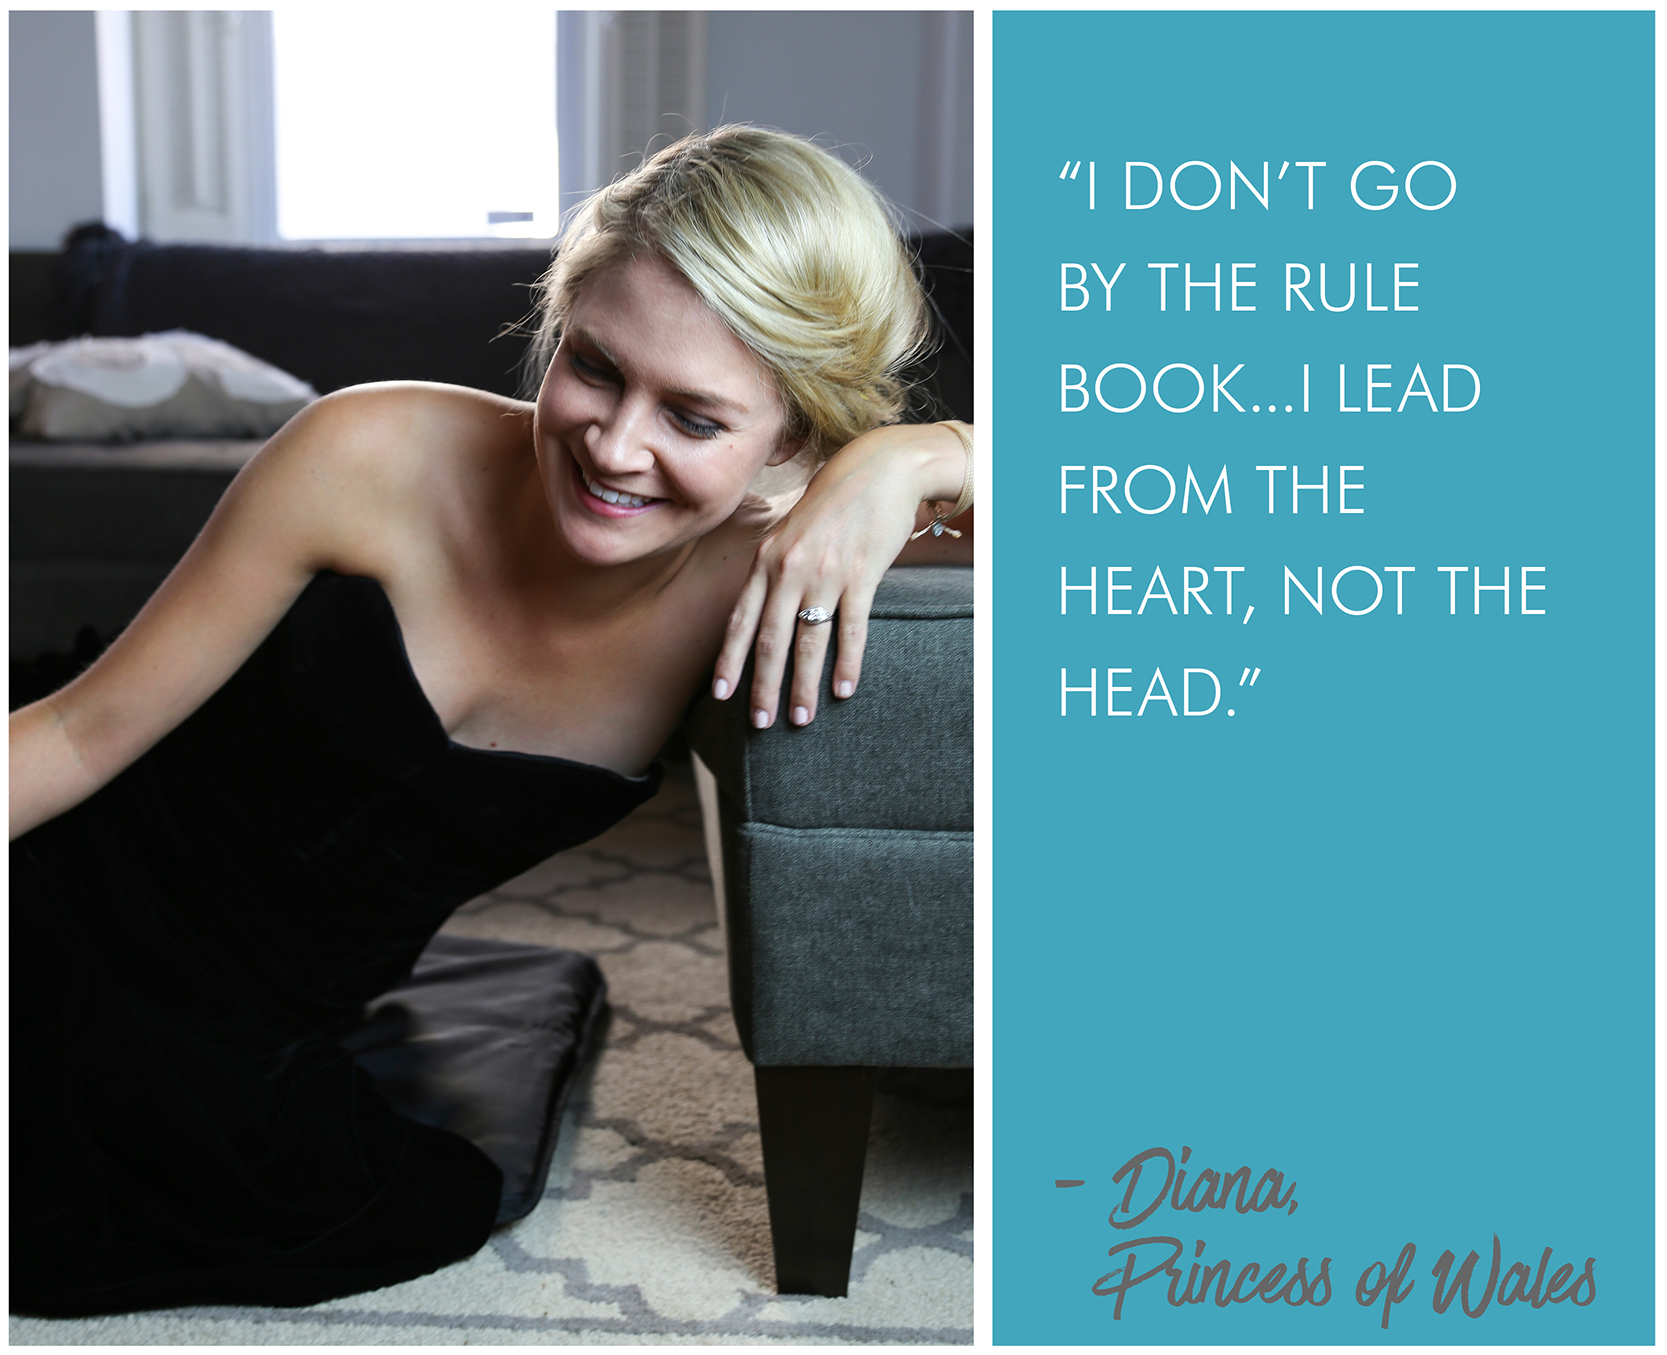 'I don't go by the rule book...I lead from the heart, not the head.' - Princess Diana